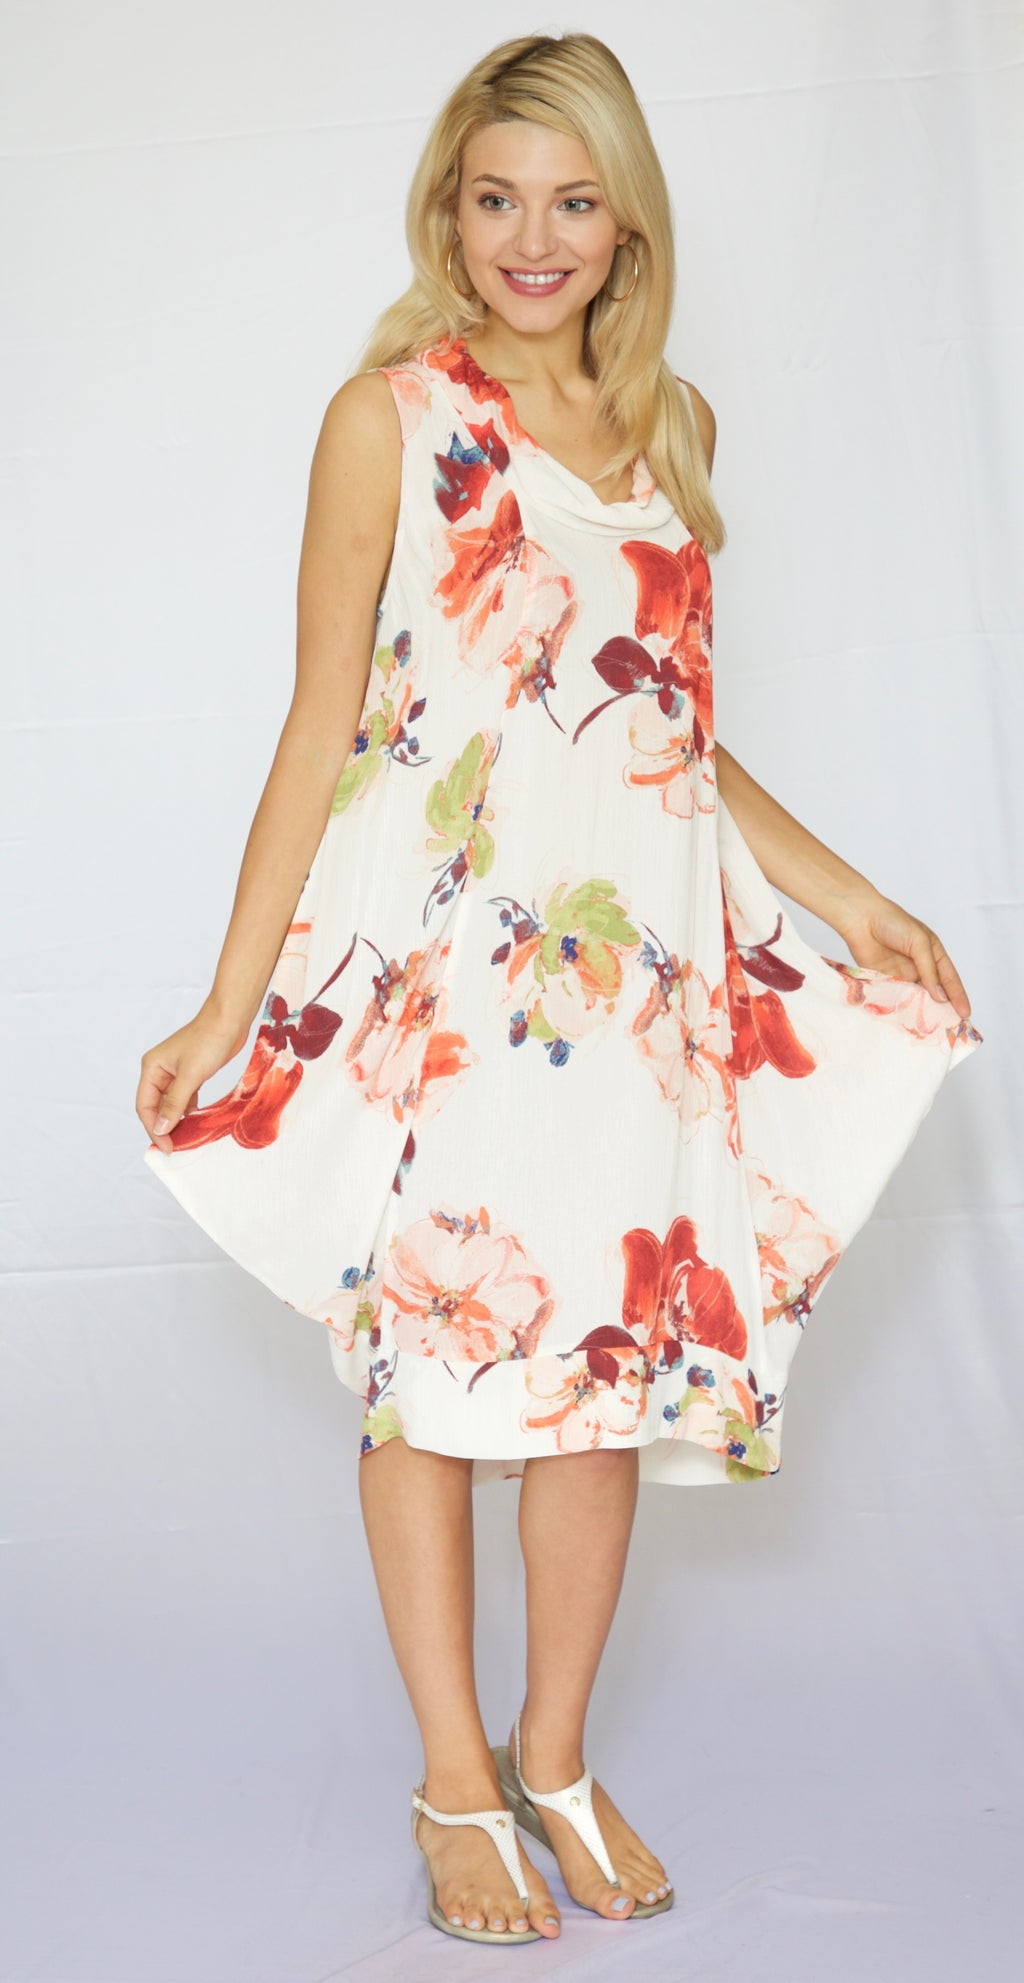 Trishia Grace-Cowl neck sundress in Orange Floral